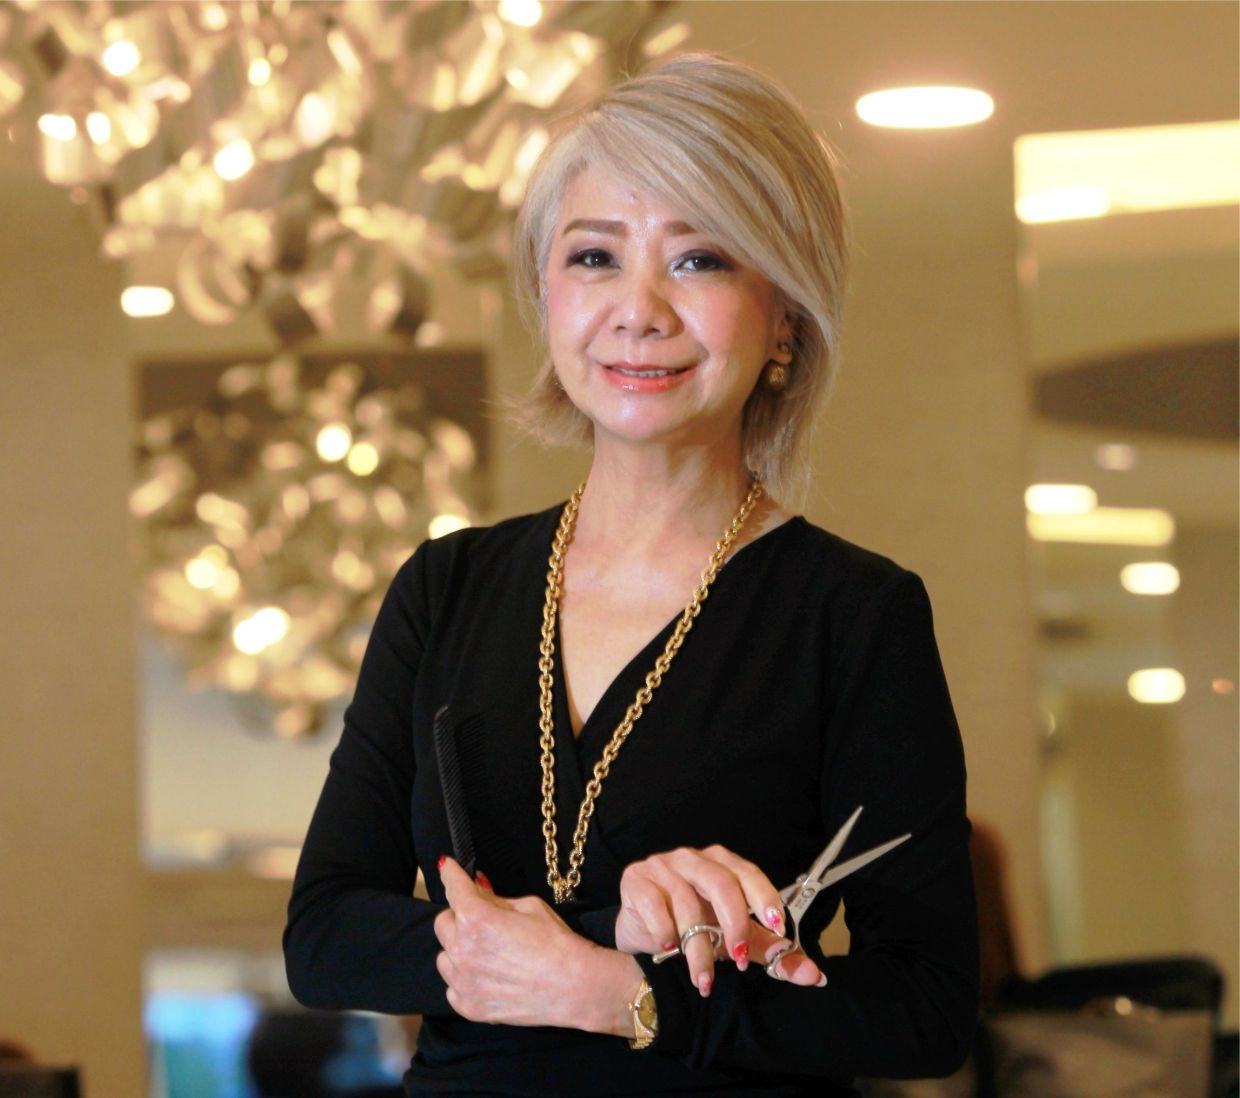 Instead of cutting your hair during this MCO, Datin Winnie Loo suggests embracing change and maybe thinking of paving the way for a new hairstyle, by leaving your hair longer now. -- ART CHEN/The Star